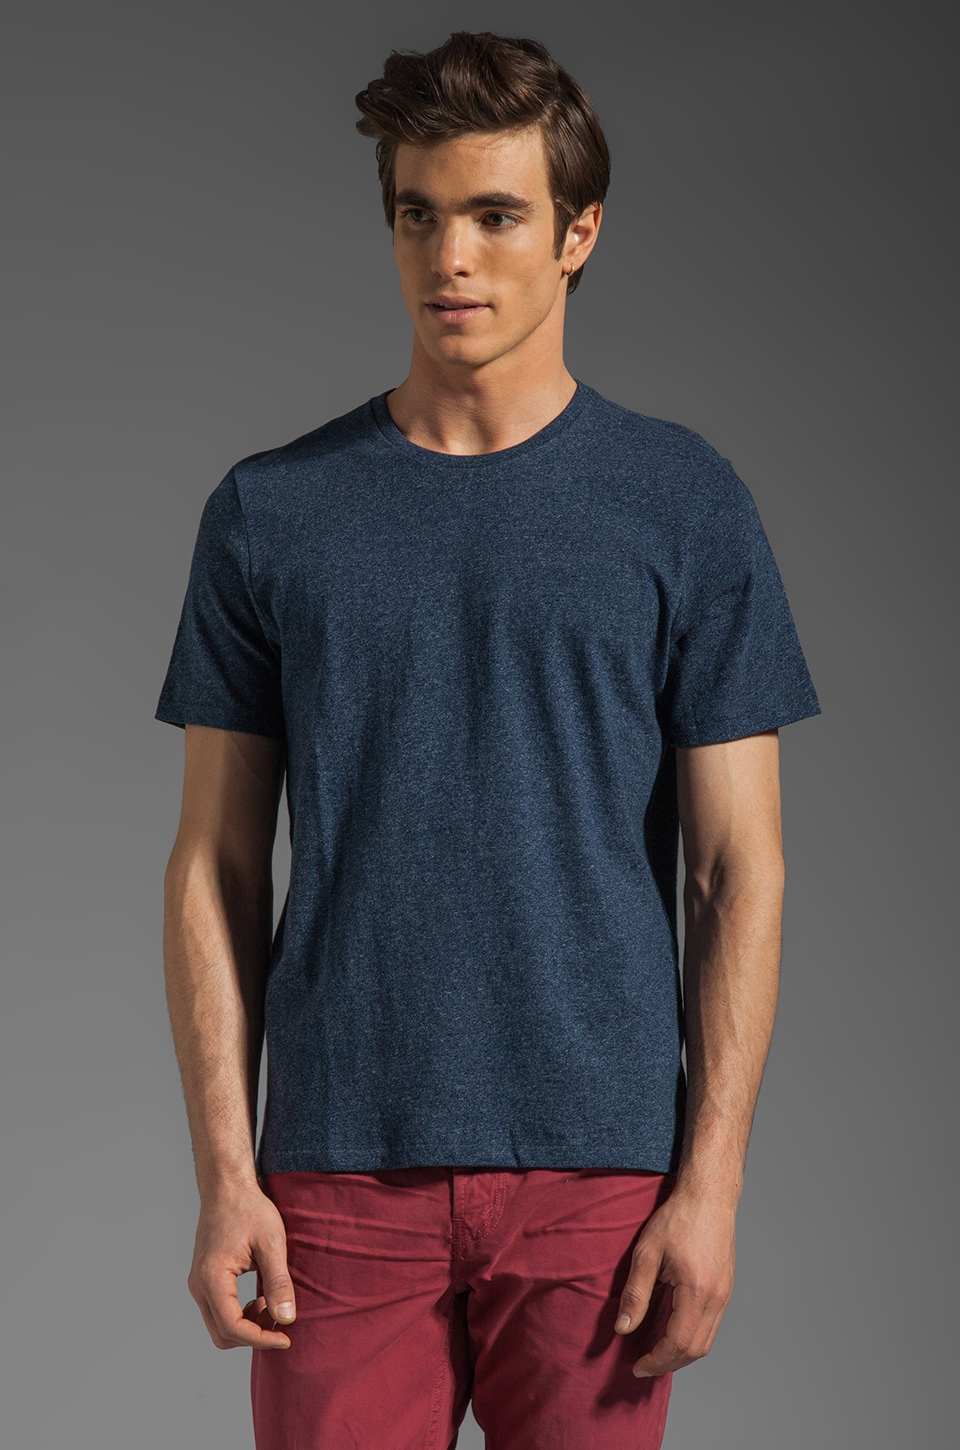 Jack Spade Kinsley Crewneck T-Shirt in Heather Navy